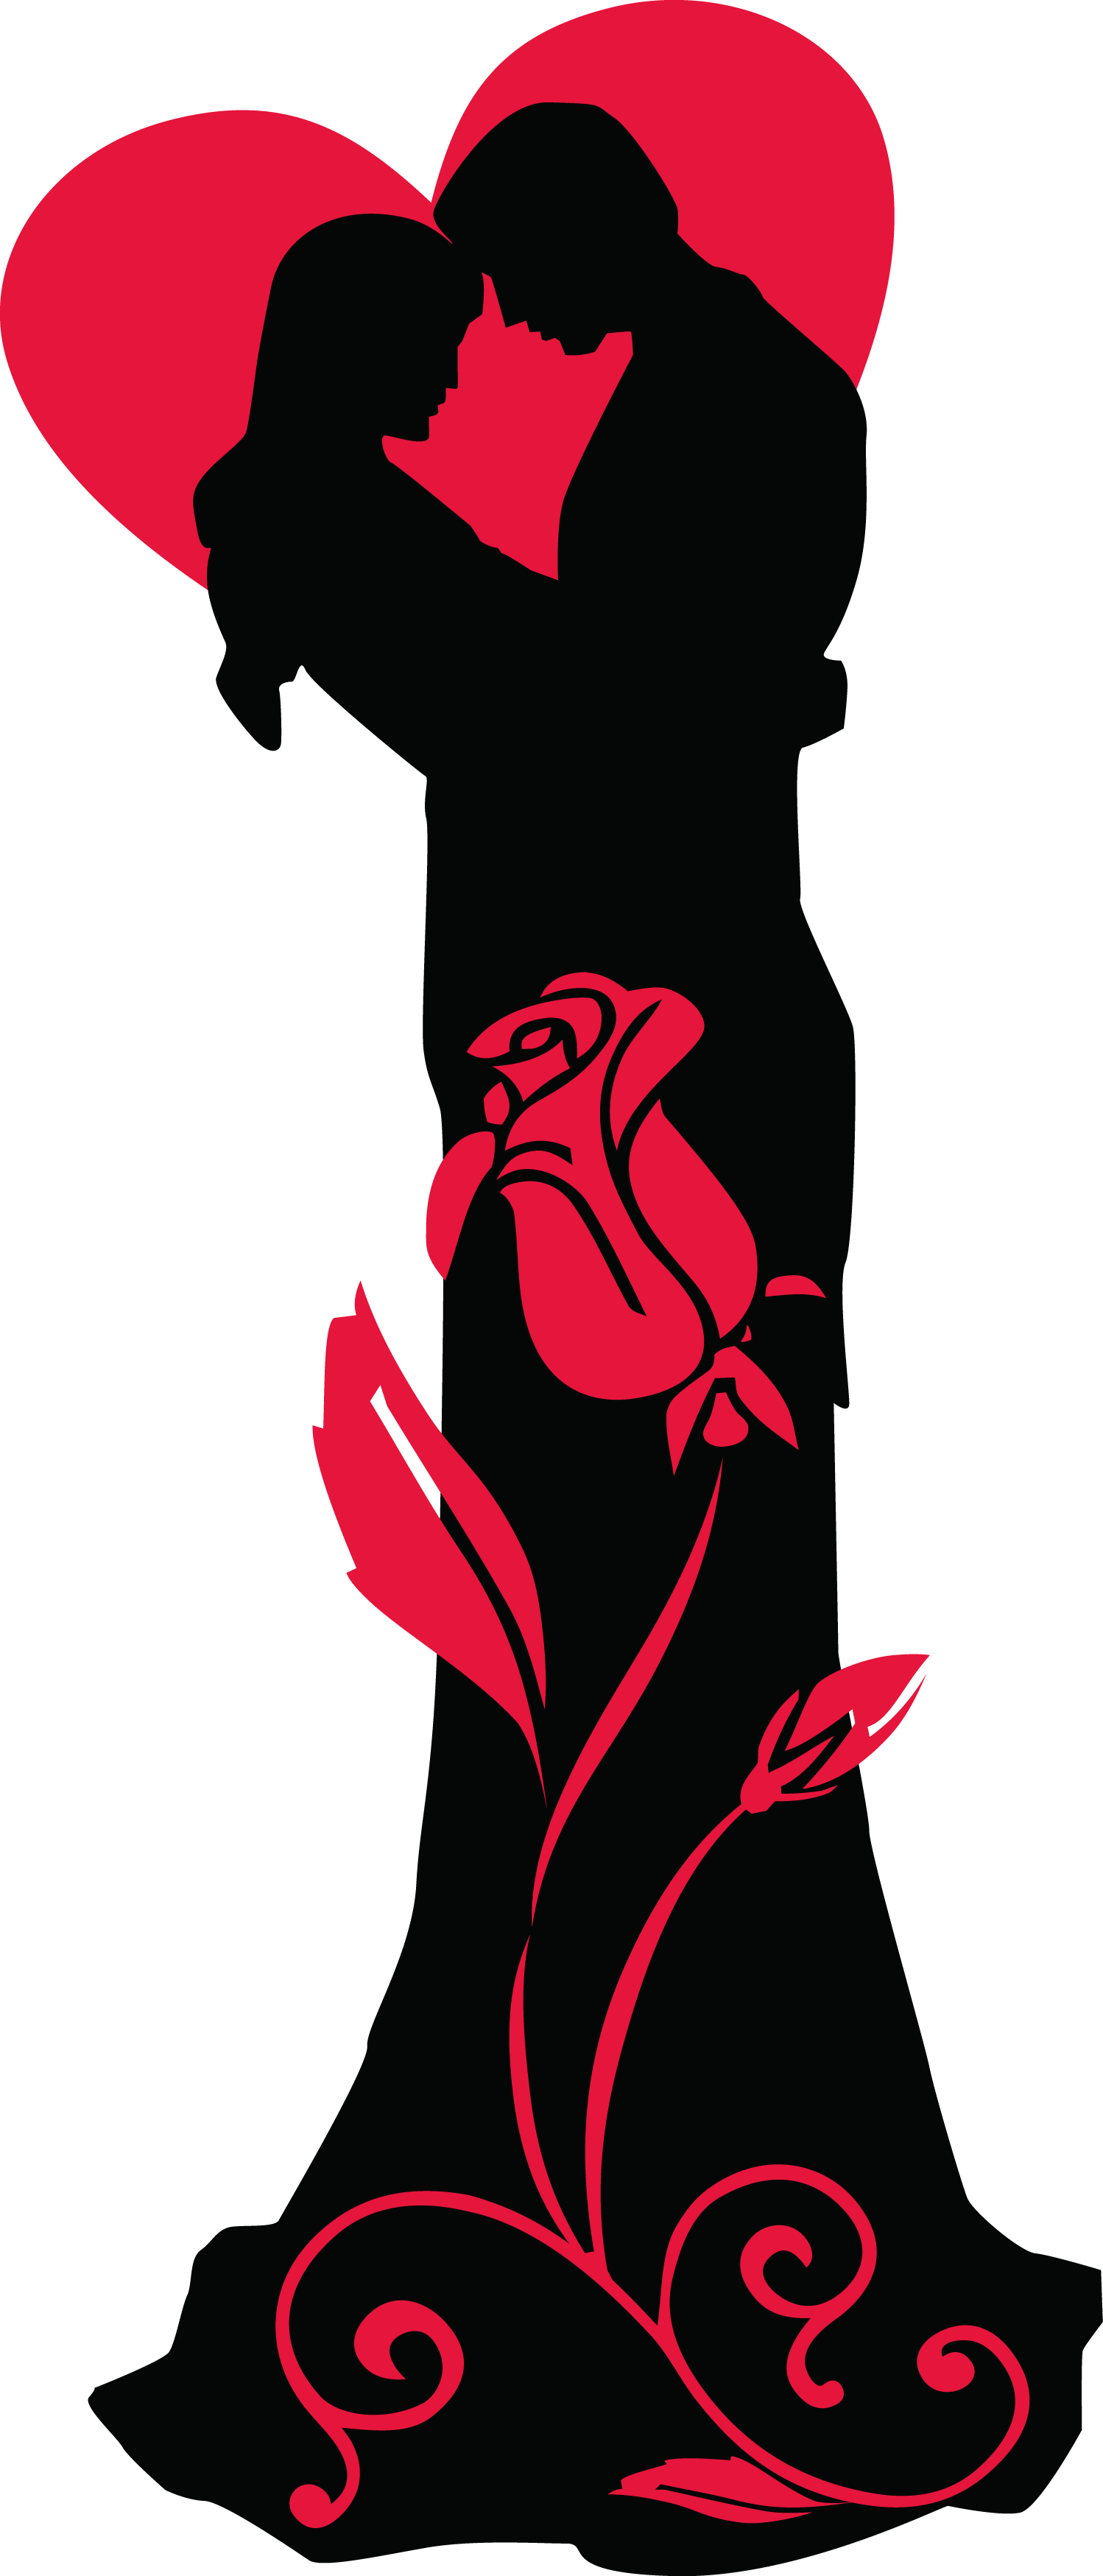 Clipart roses silhouette. Transparent loving couple silhouettes